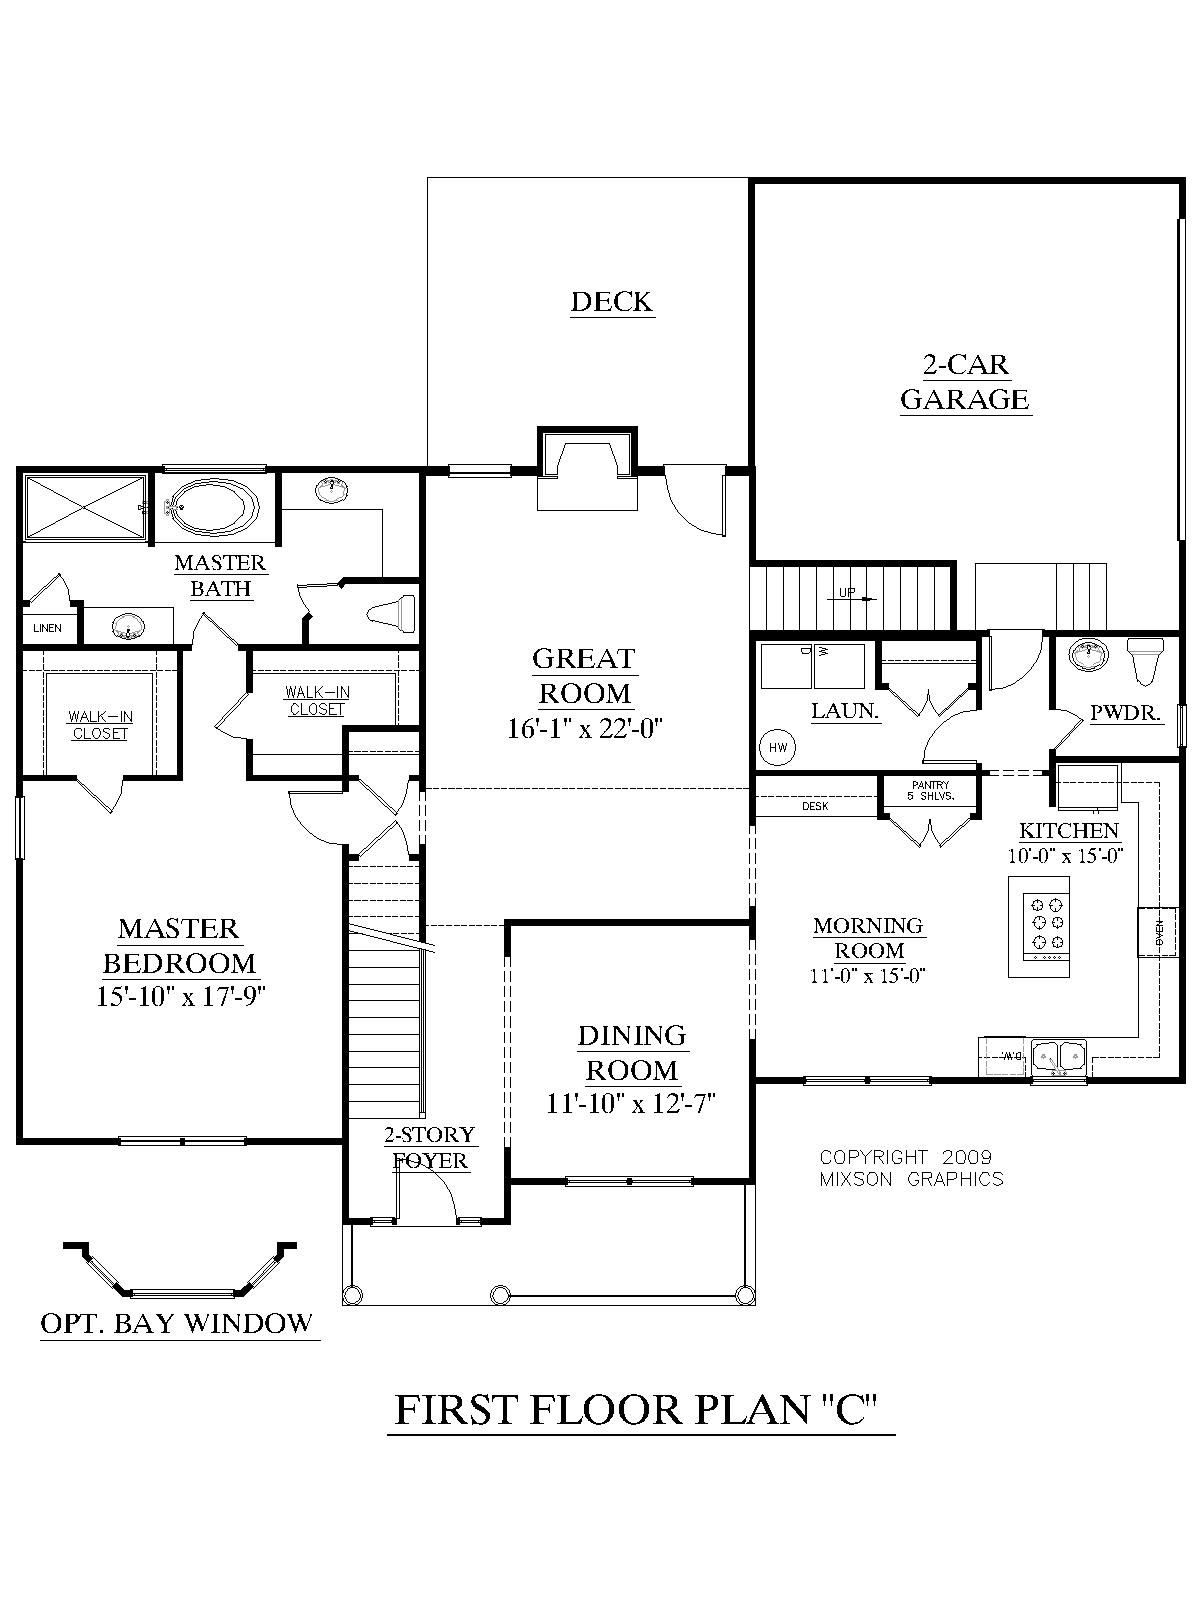 House plan 2675 c longcreek c first floor traditional 2 for 4 bedroom layout design